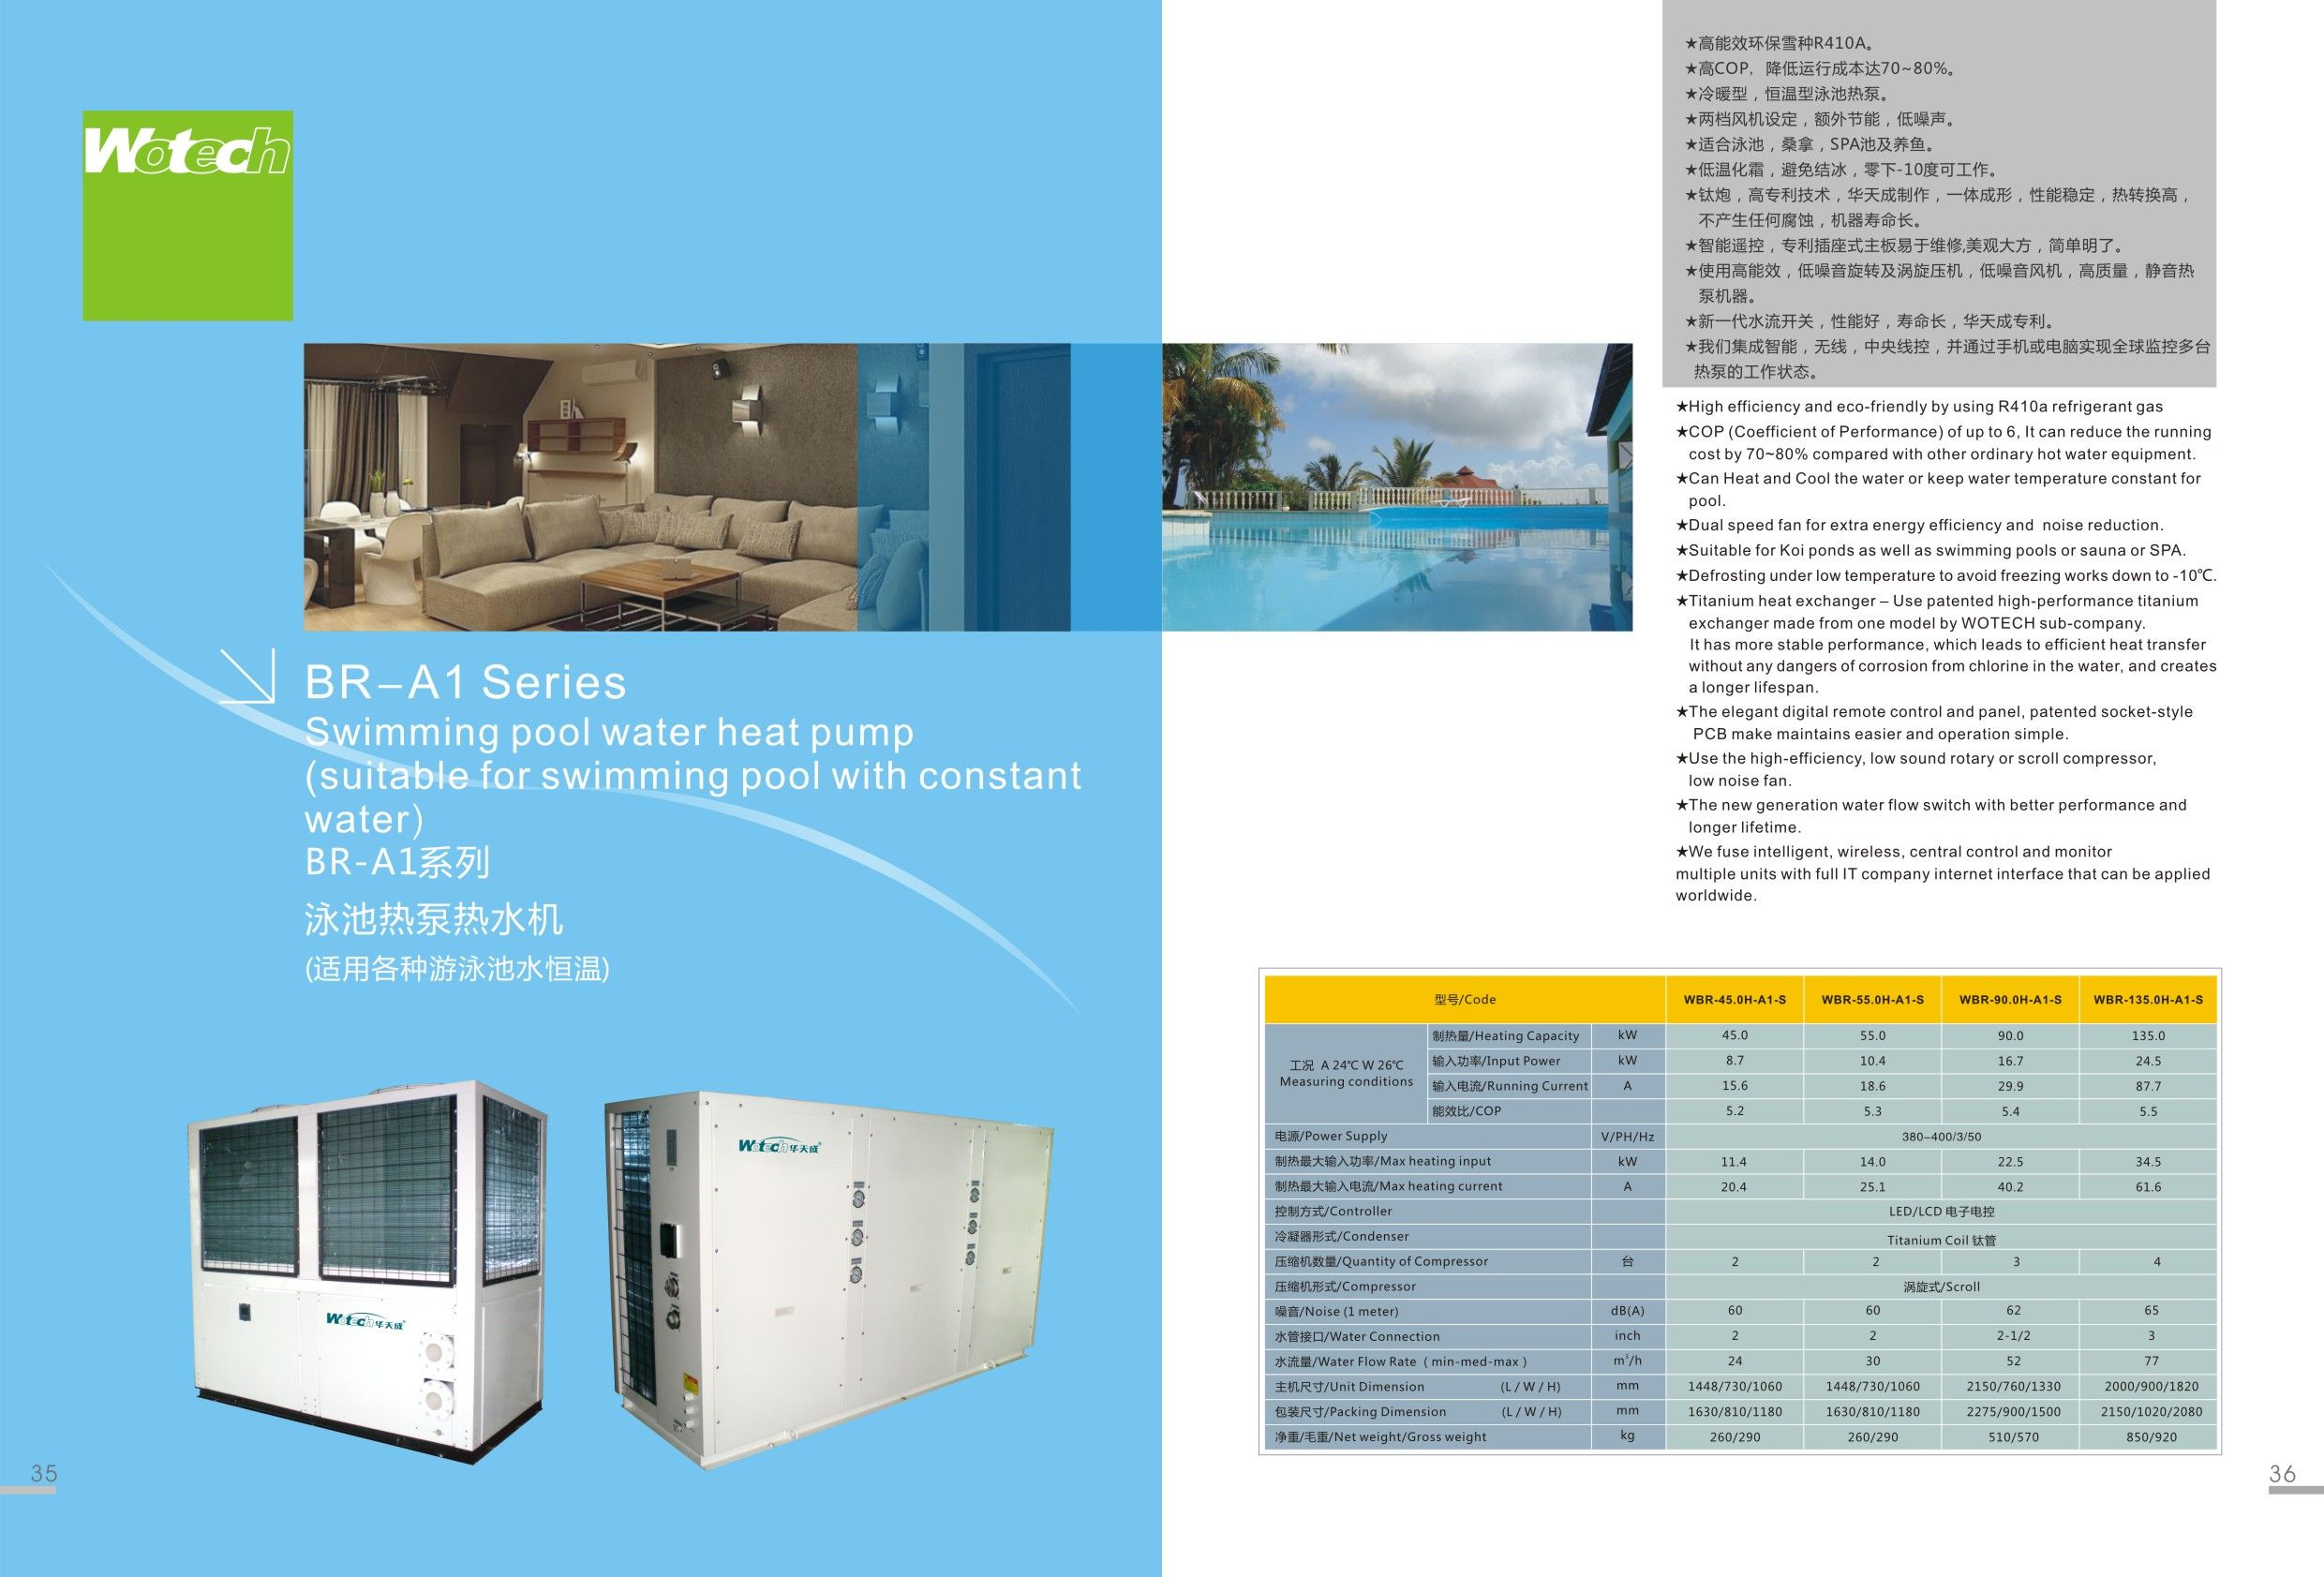 Wotech Swimming Pool Heat Pump Br A1 Series Suitable For Swimming Pool With Constant Water Heated Pool Water Heating Pool Water